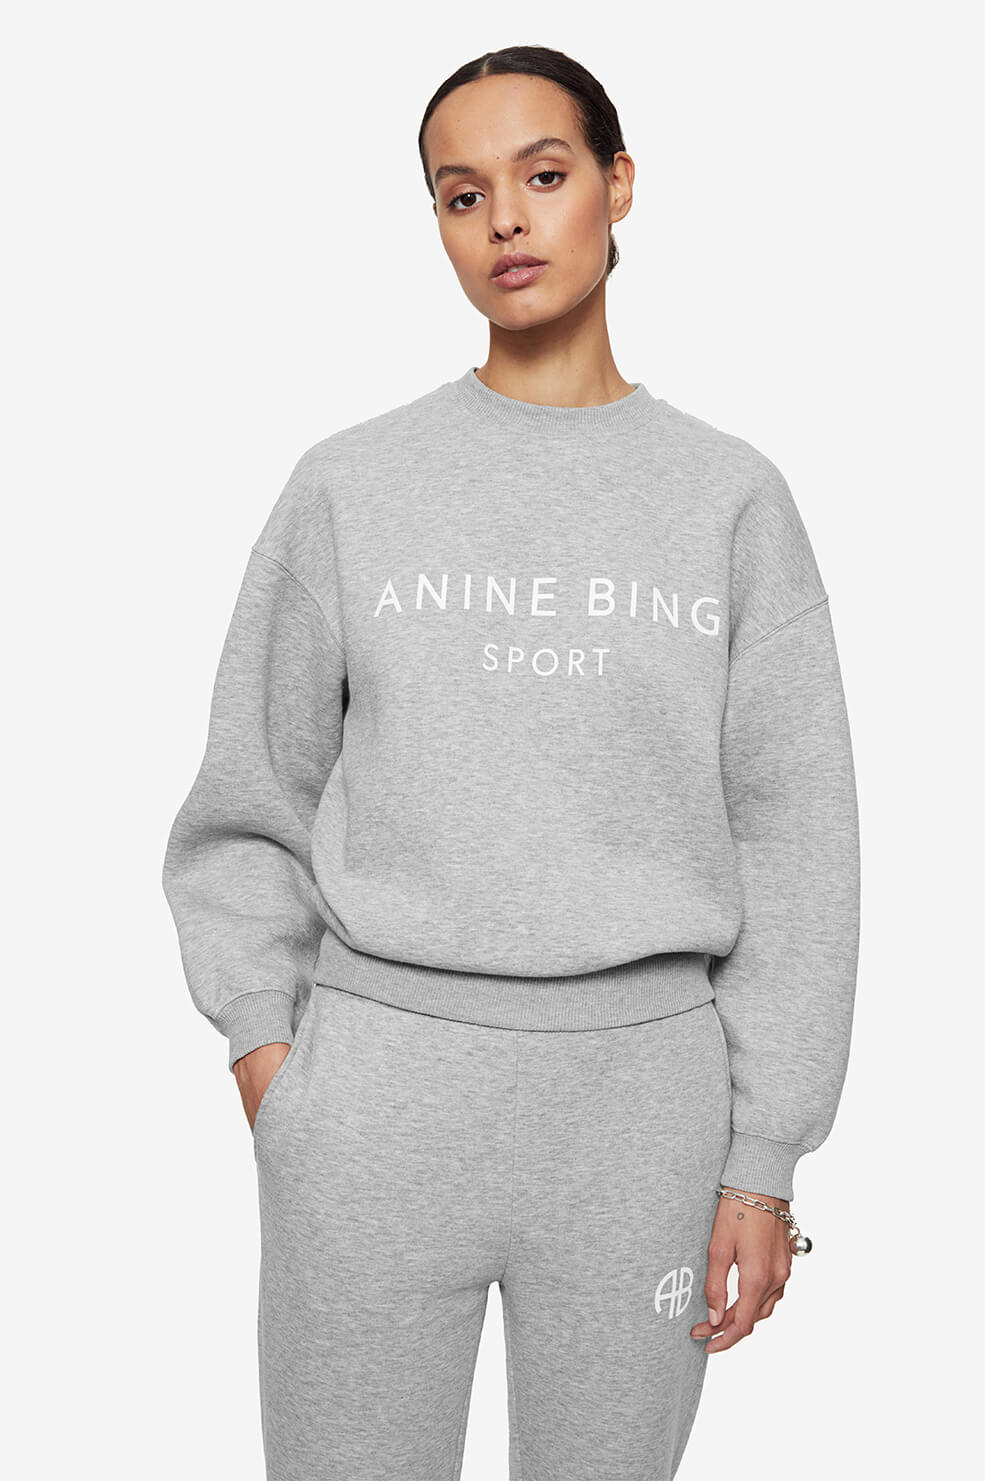 ANINE BING Evan Sweatshirt - Heather Grey